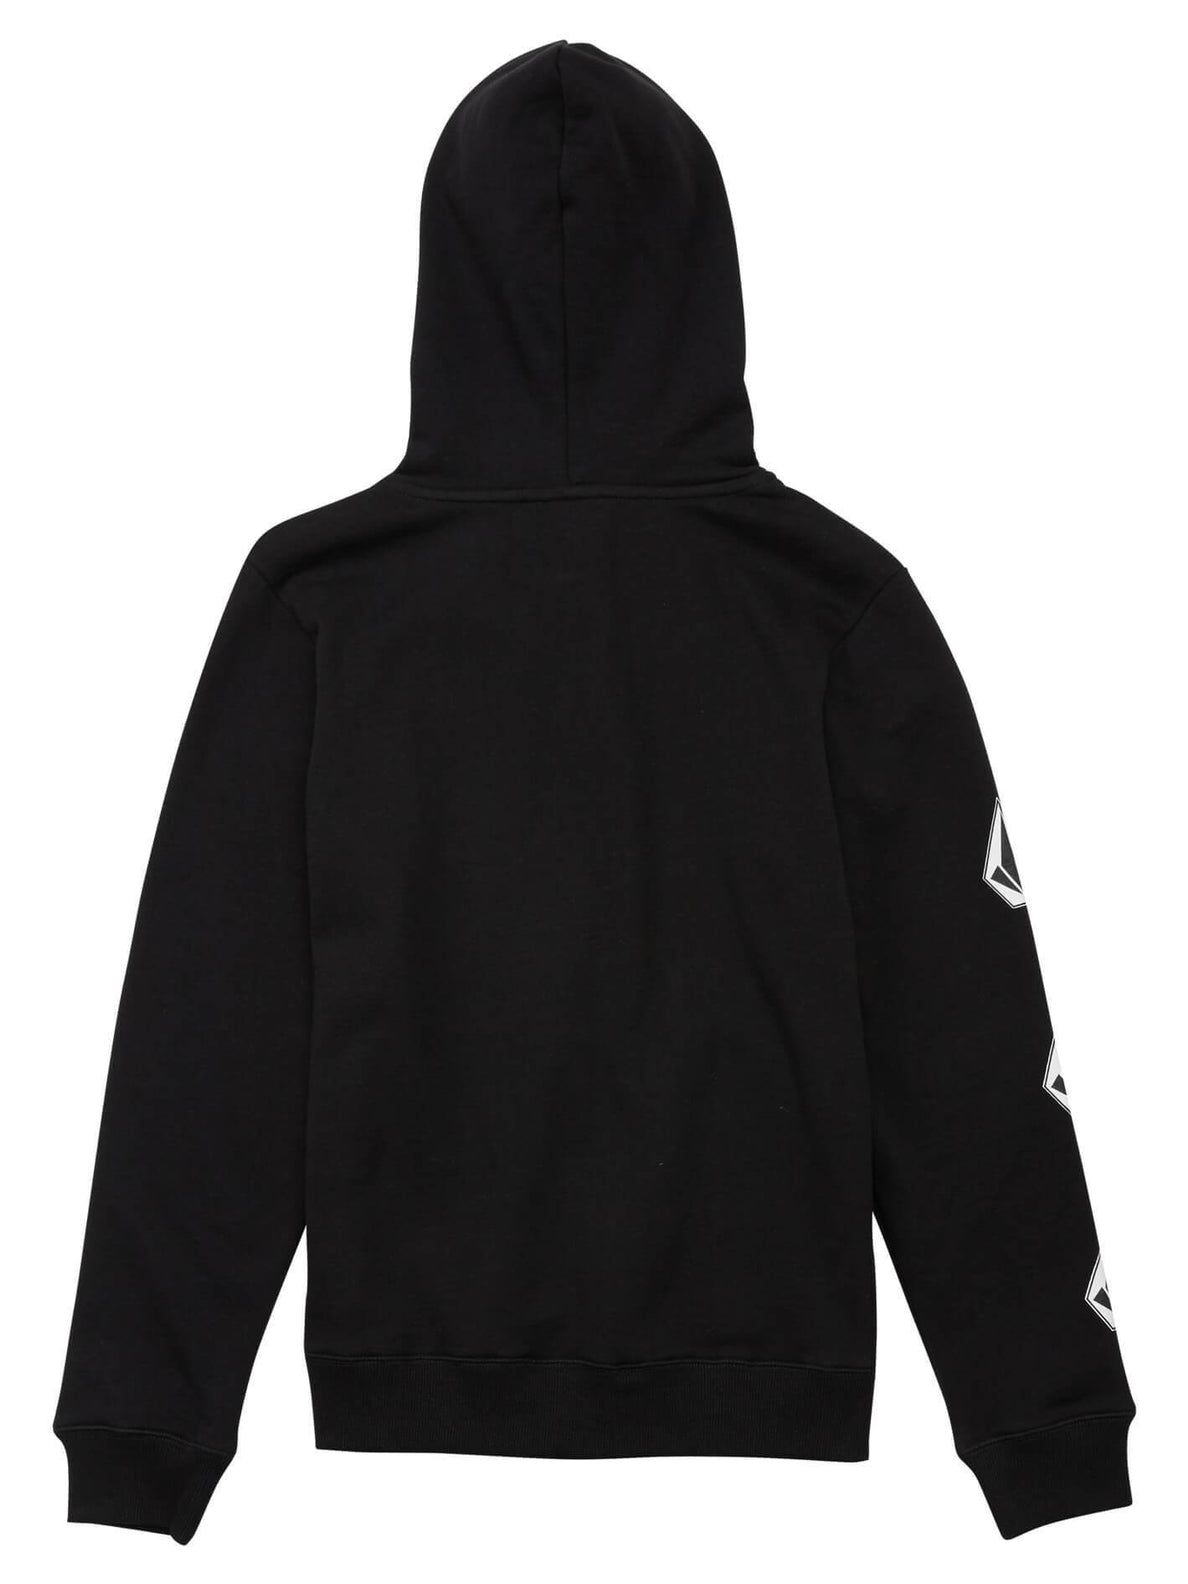 Big Boys Deadly Stones Pullover Hoodie - Black Combo (Niňo)